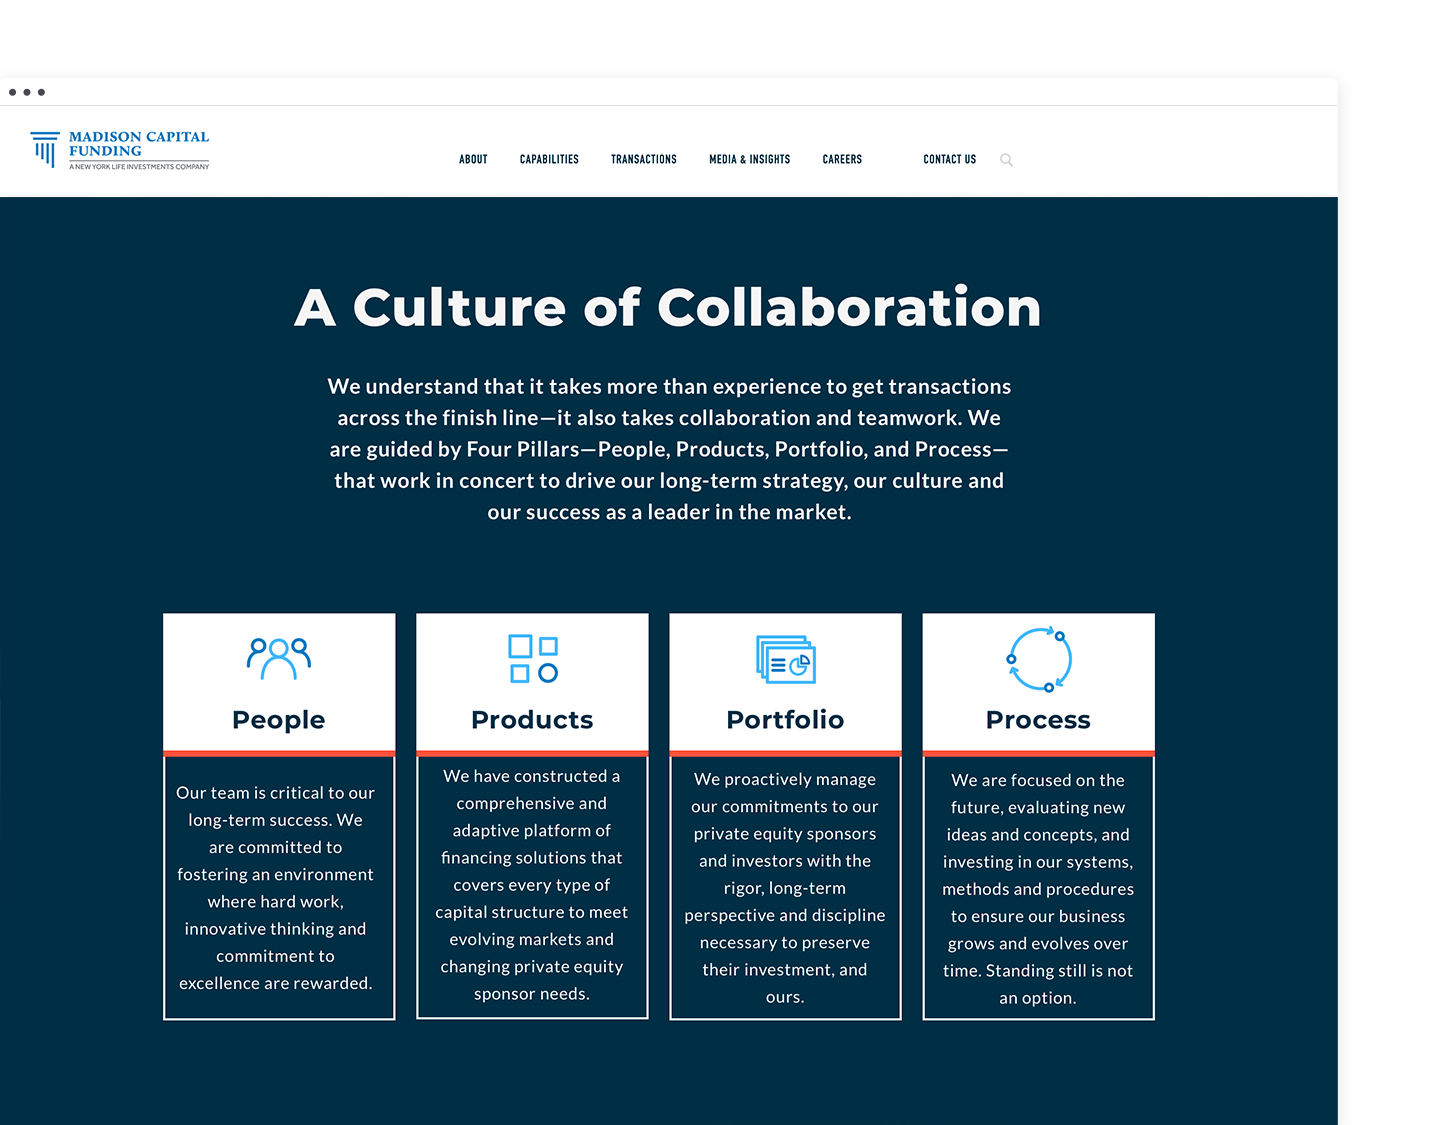 Desktop design of page on corporate culture with custom iconography to represent the company's values